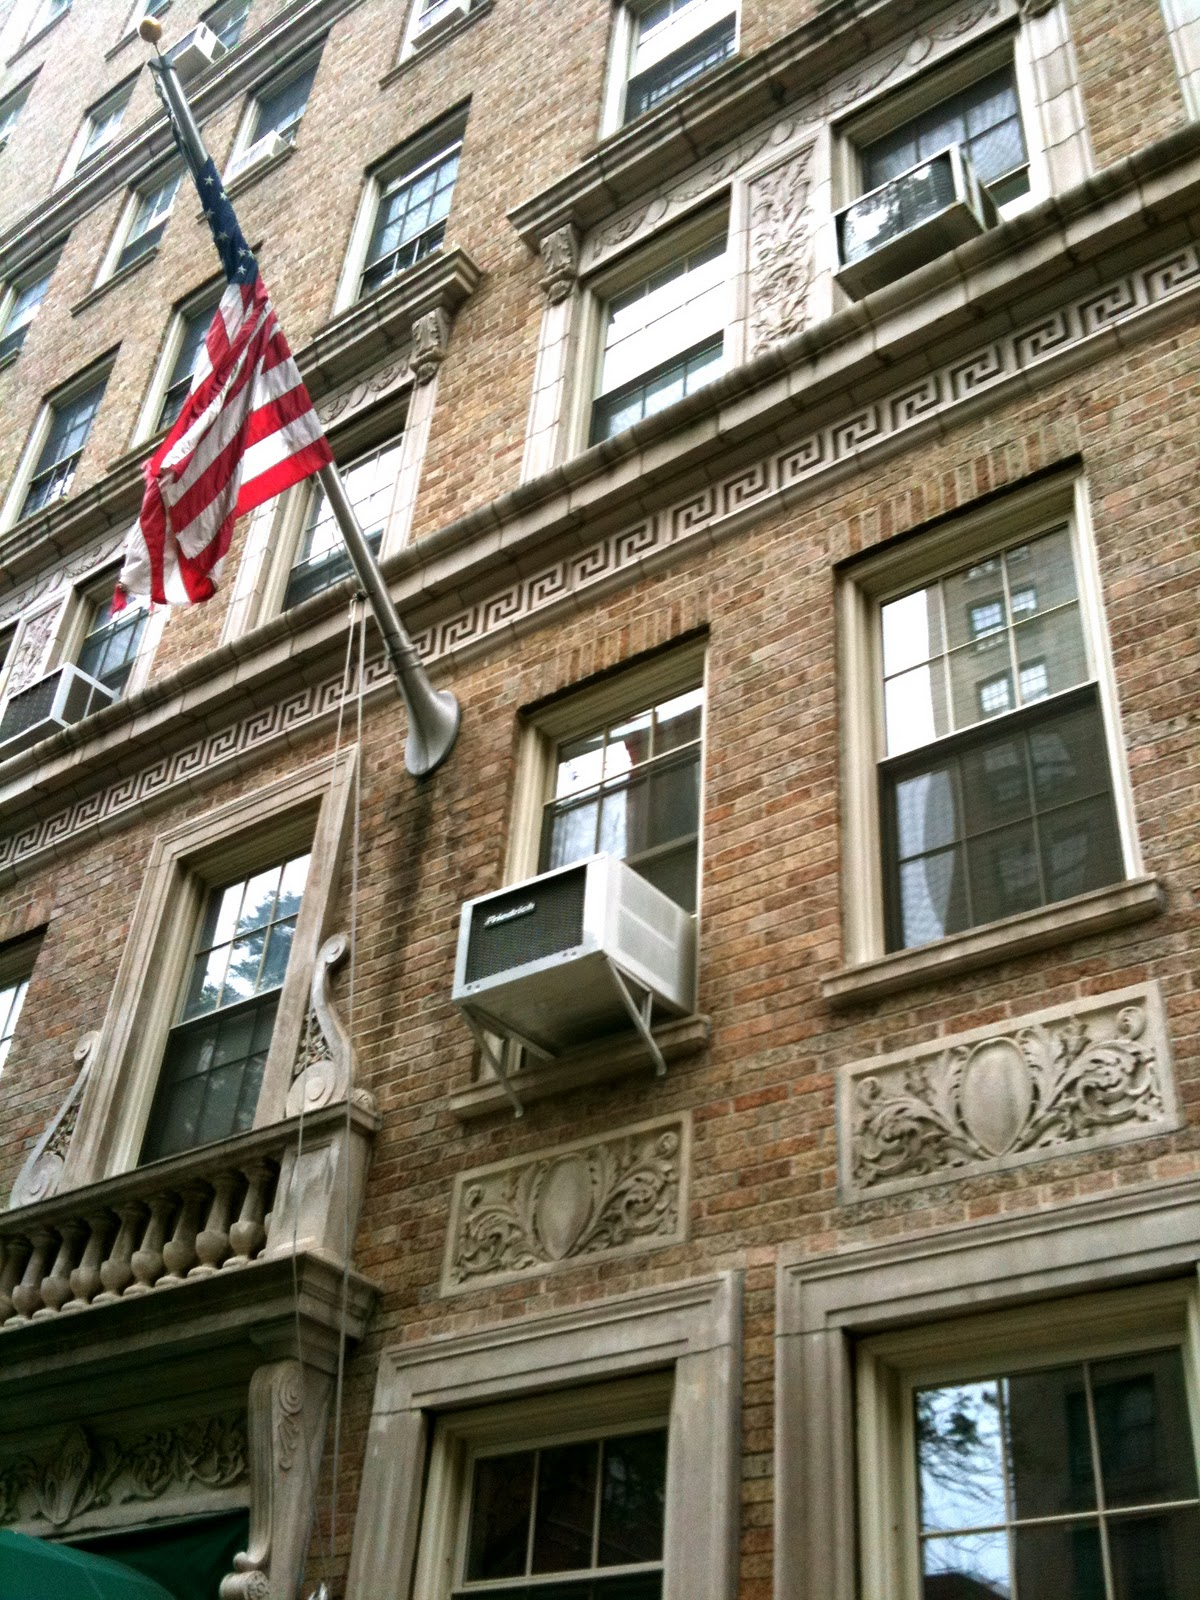 Itty Bitty In New York City: Keeping ColdItty Bitty in New York City